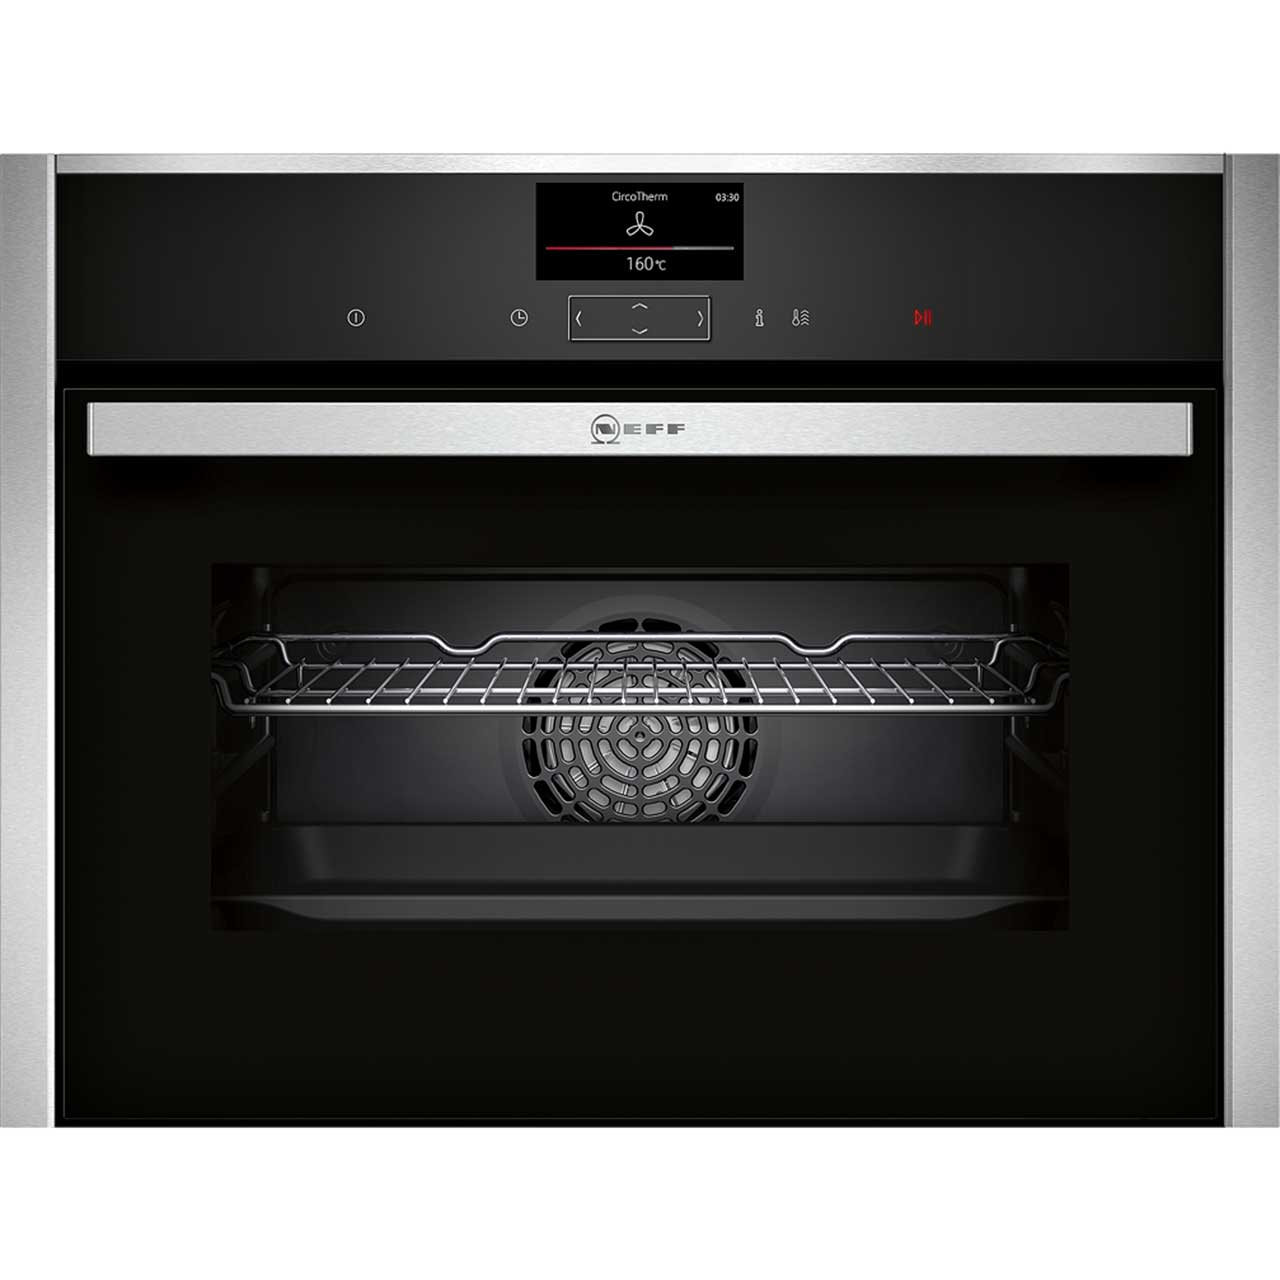 Buy cheap neff oven compare cookers ovens prices for best uk deals - Neff single oven with grill ...